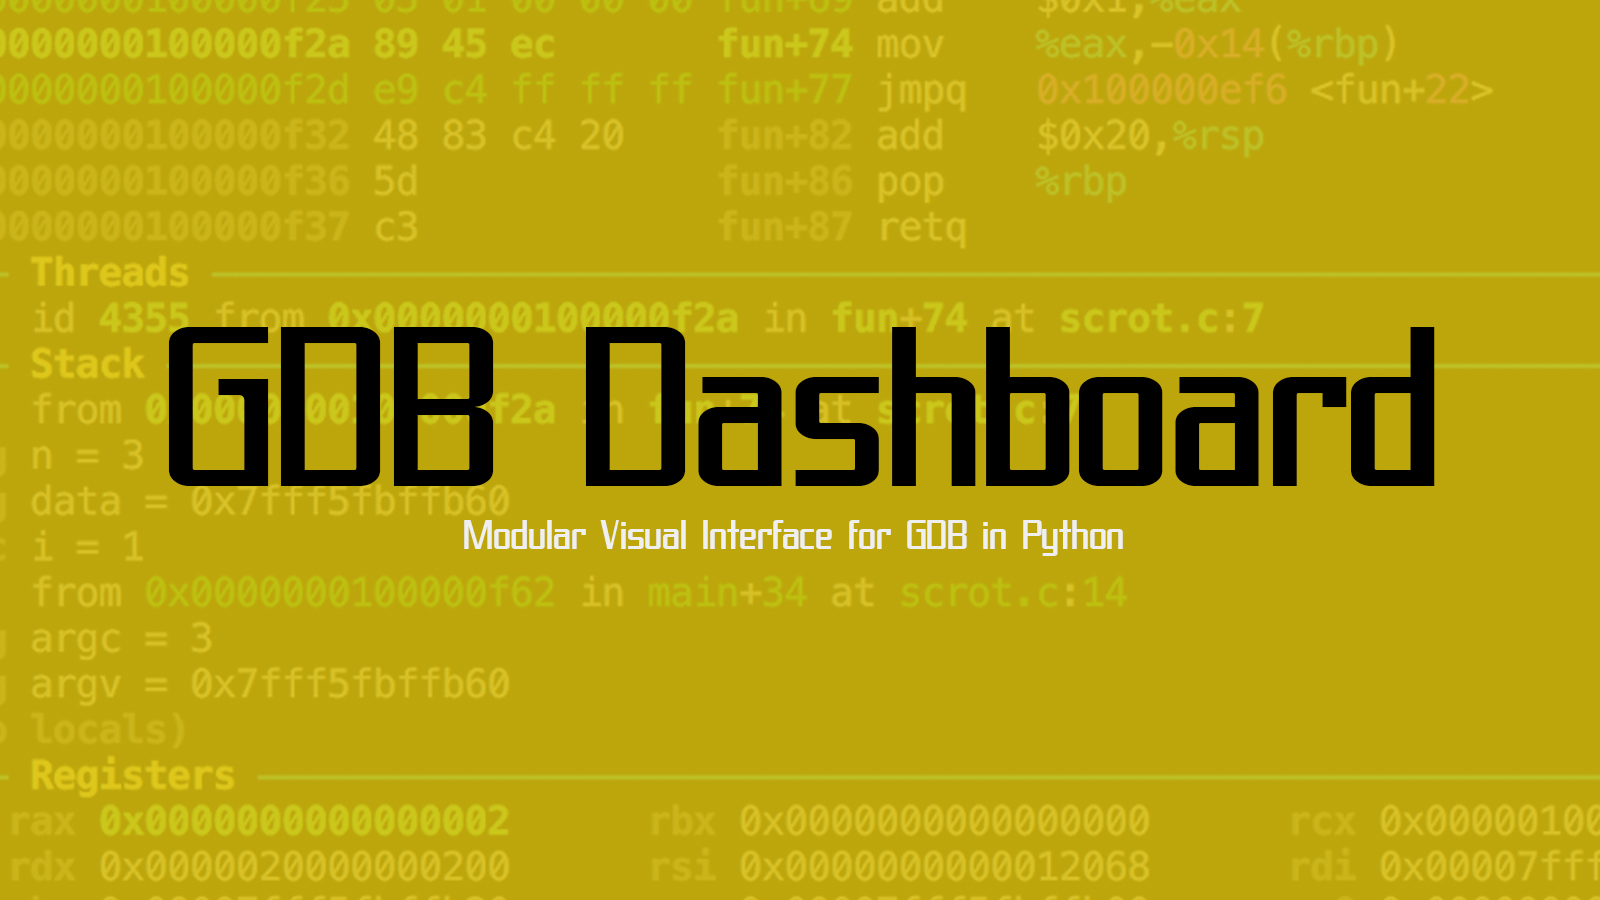 GDB Dashboard - Modular Visual Interface for GDB in Python